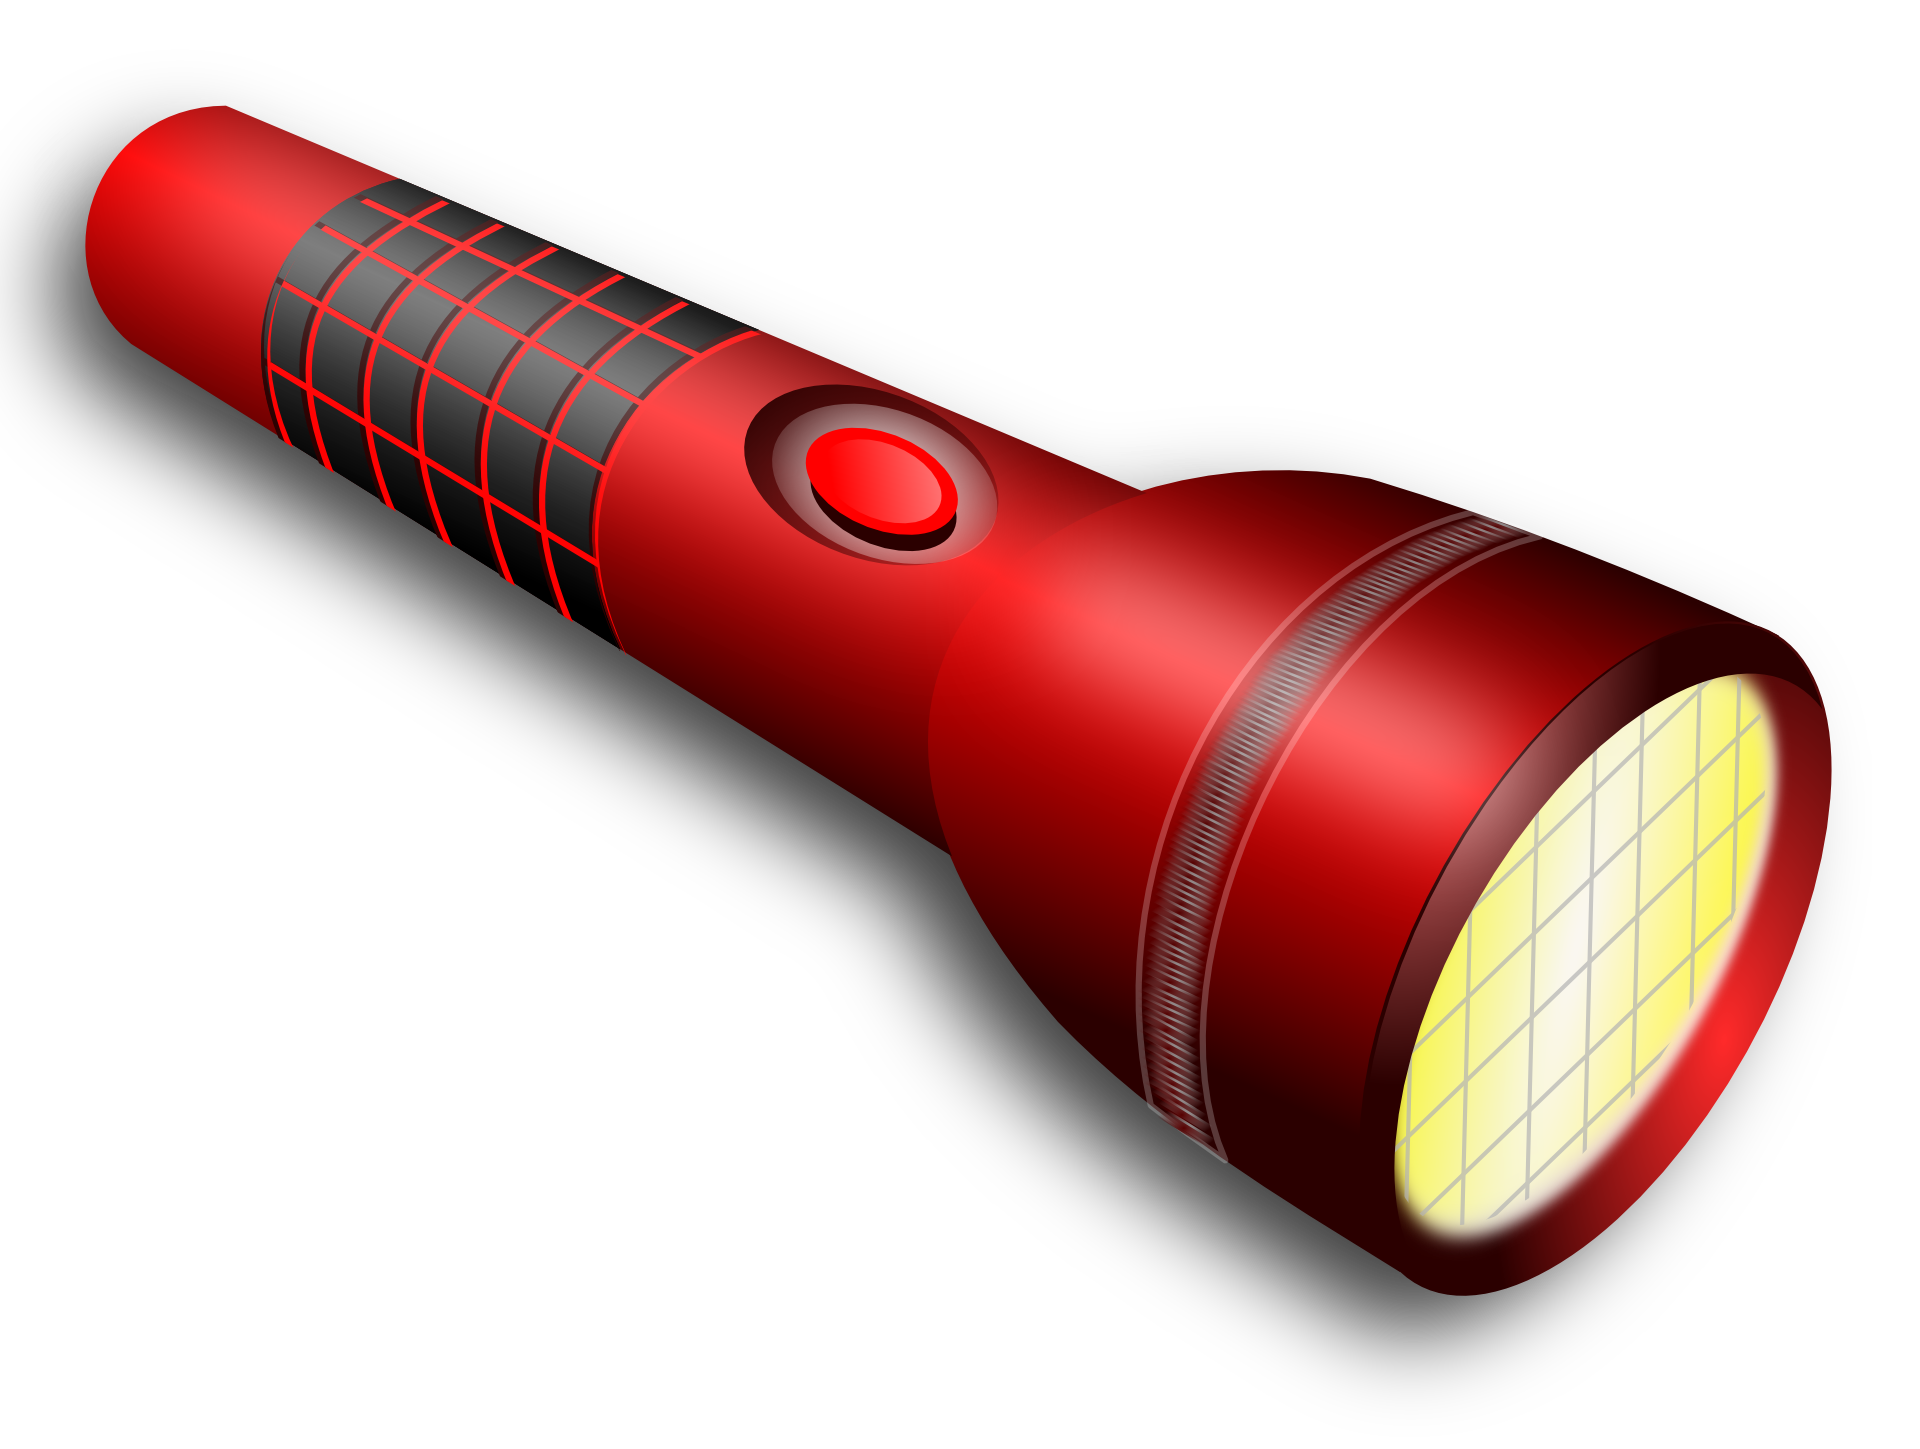 Flashlight transparent torch. Light png image purepng